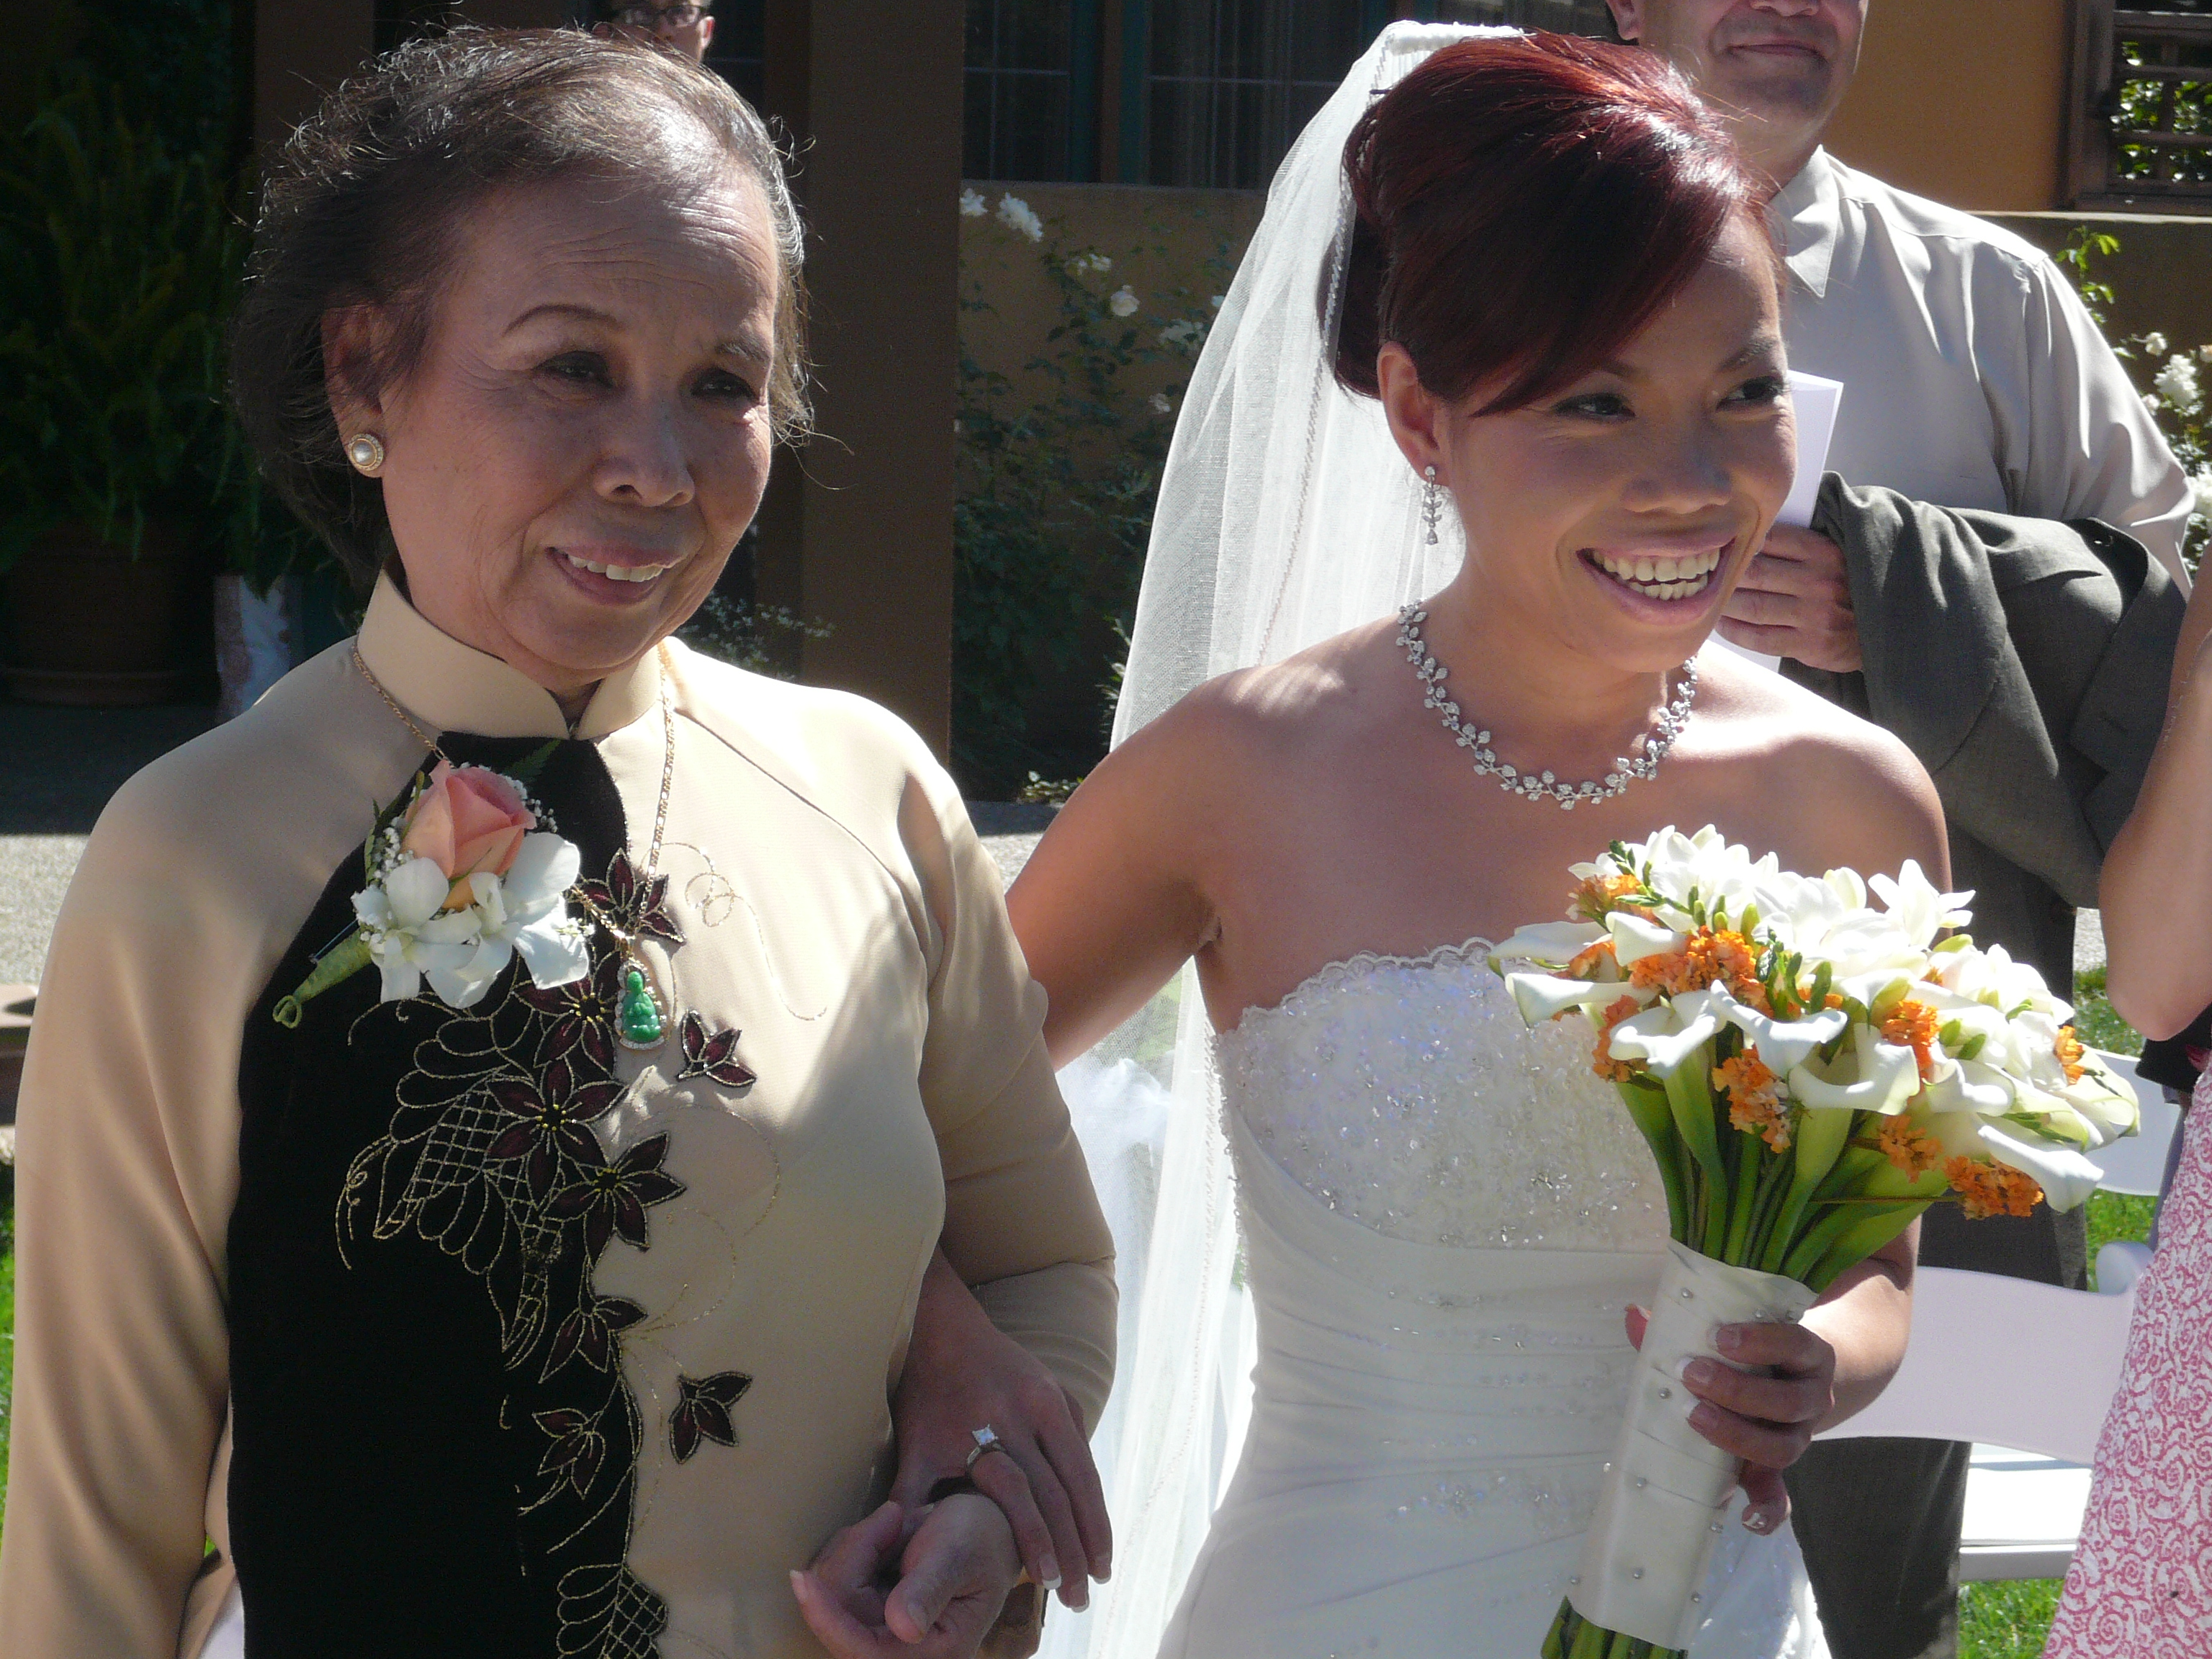 5 Traditional Mother Of The Bride Duties To Keep In Mind